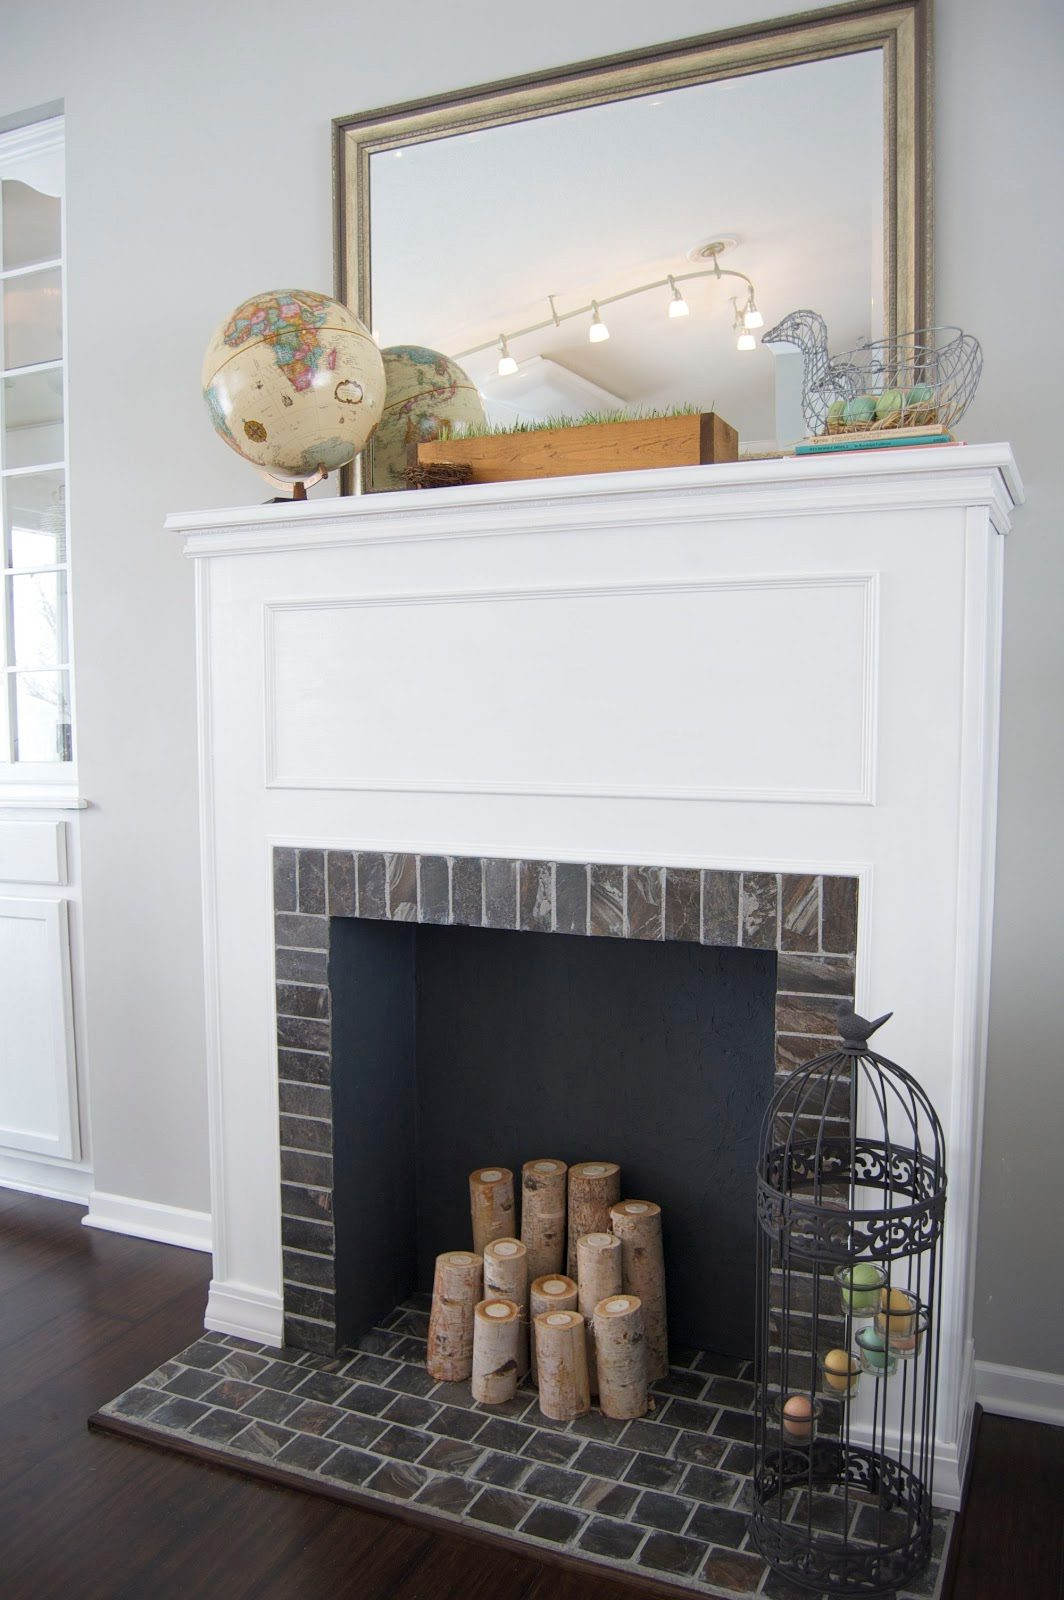 Brand-new Faux Fireplaces Are Perfect Spot to Relax | Case San Jose AW04